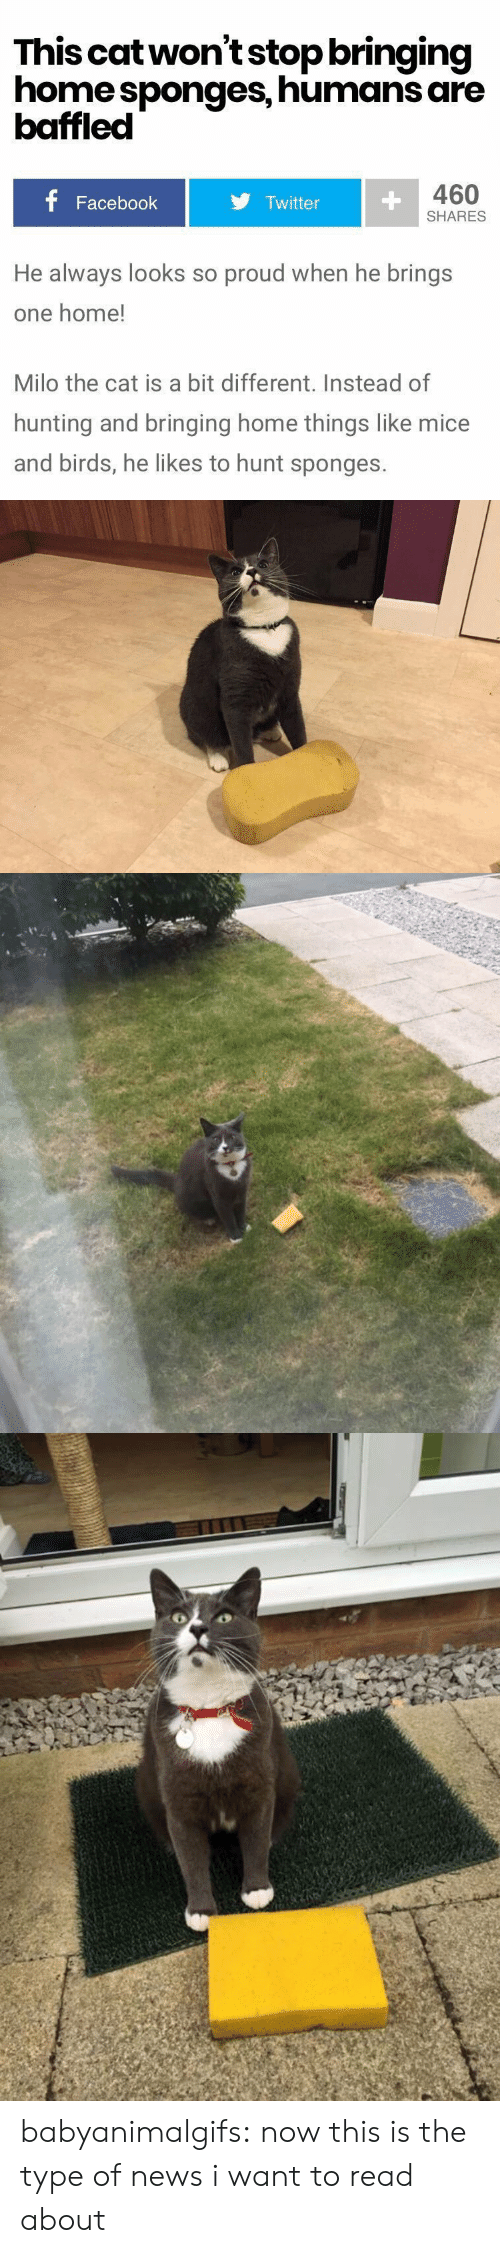 sponges: This catwon'tstop bringing  home sponges, humans are  baffled  460  Facebook  Twitter  SHARES  He always looks so proud when he brings  one home!  Milo the cat is a bit different. Instead of  hunting and bringing home things like mice  and birds, he likes to hunt sponges. babyanimalgifs:  now this is the type of news i want to read about